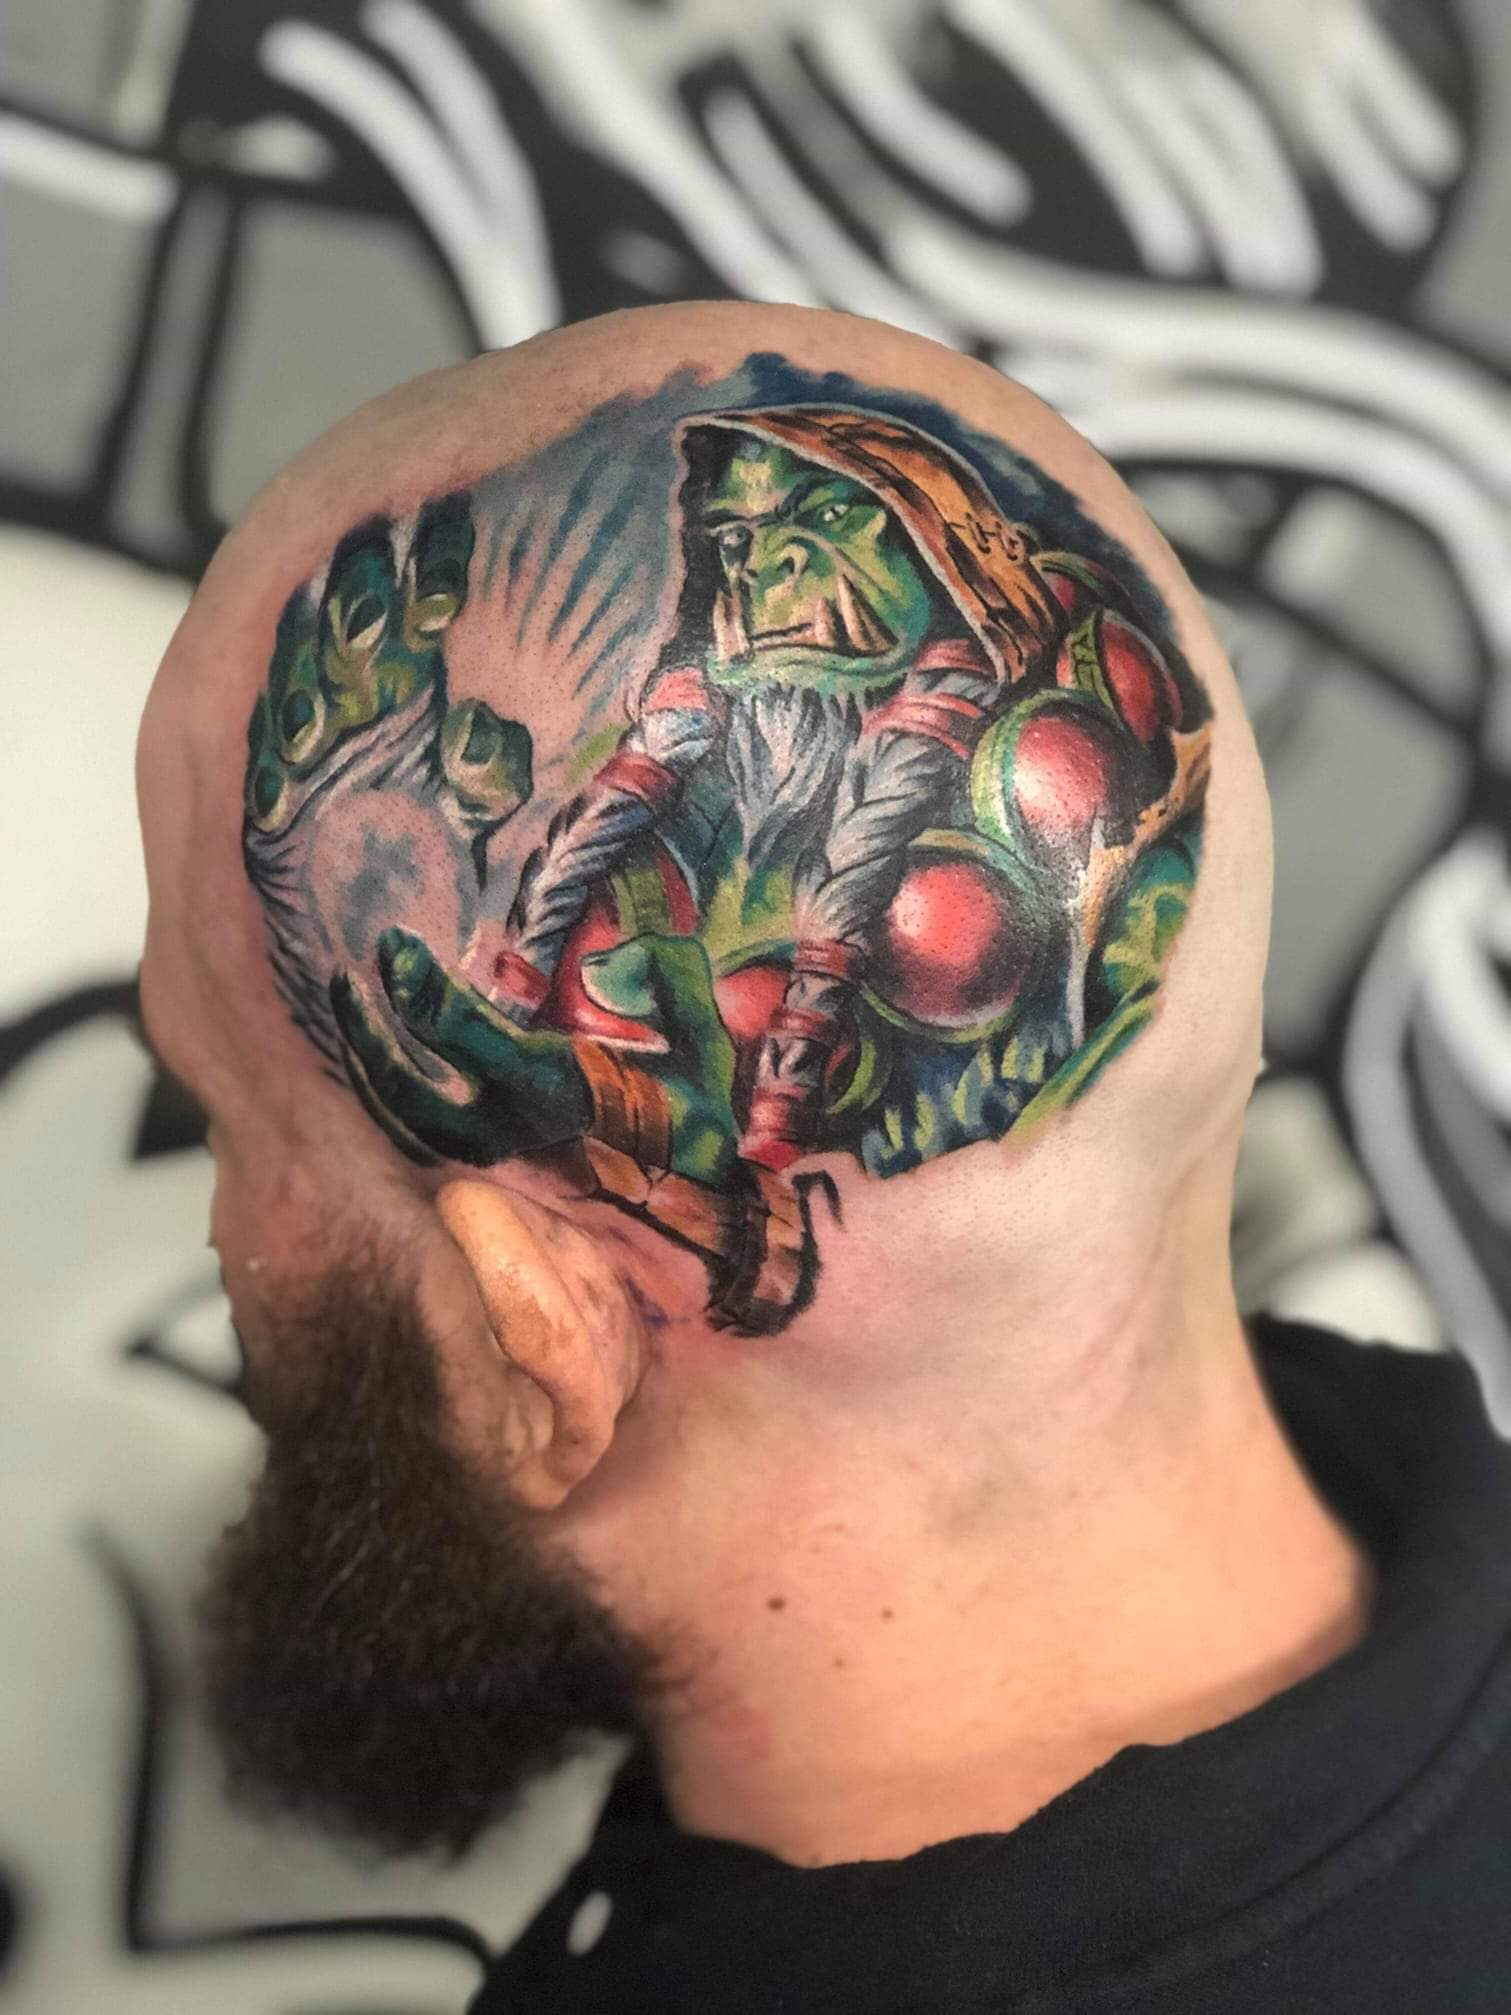 For The Horde Tattoo